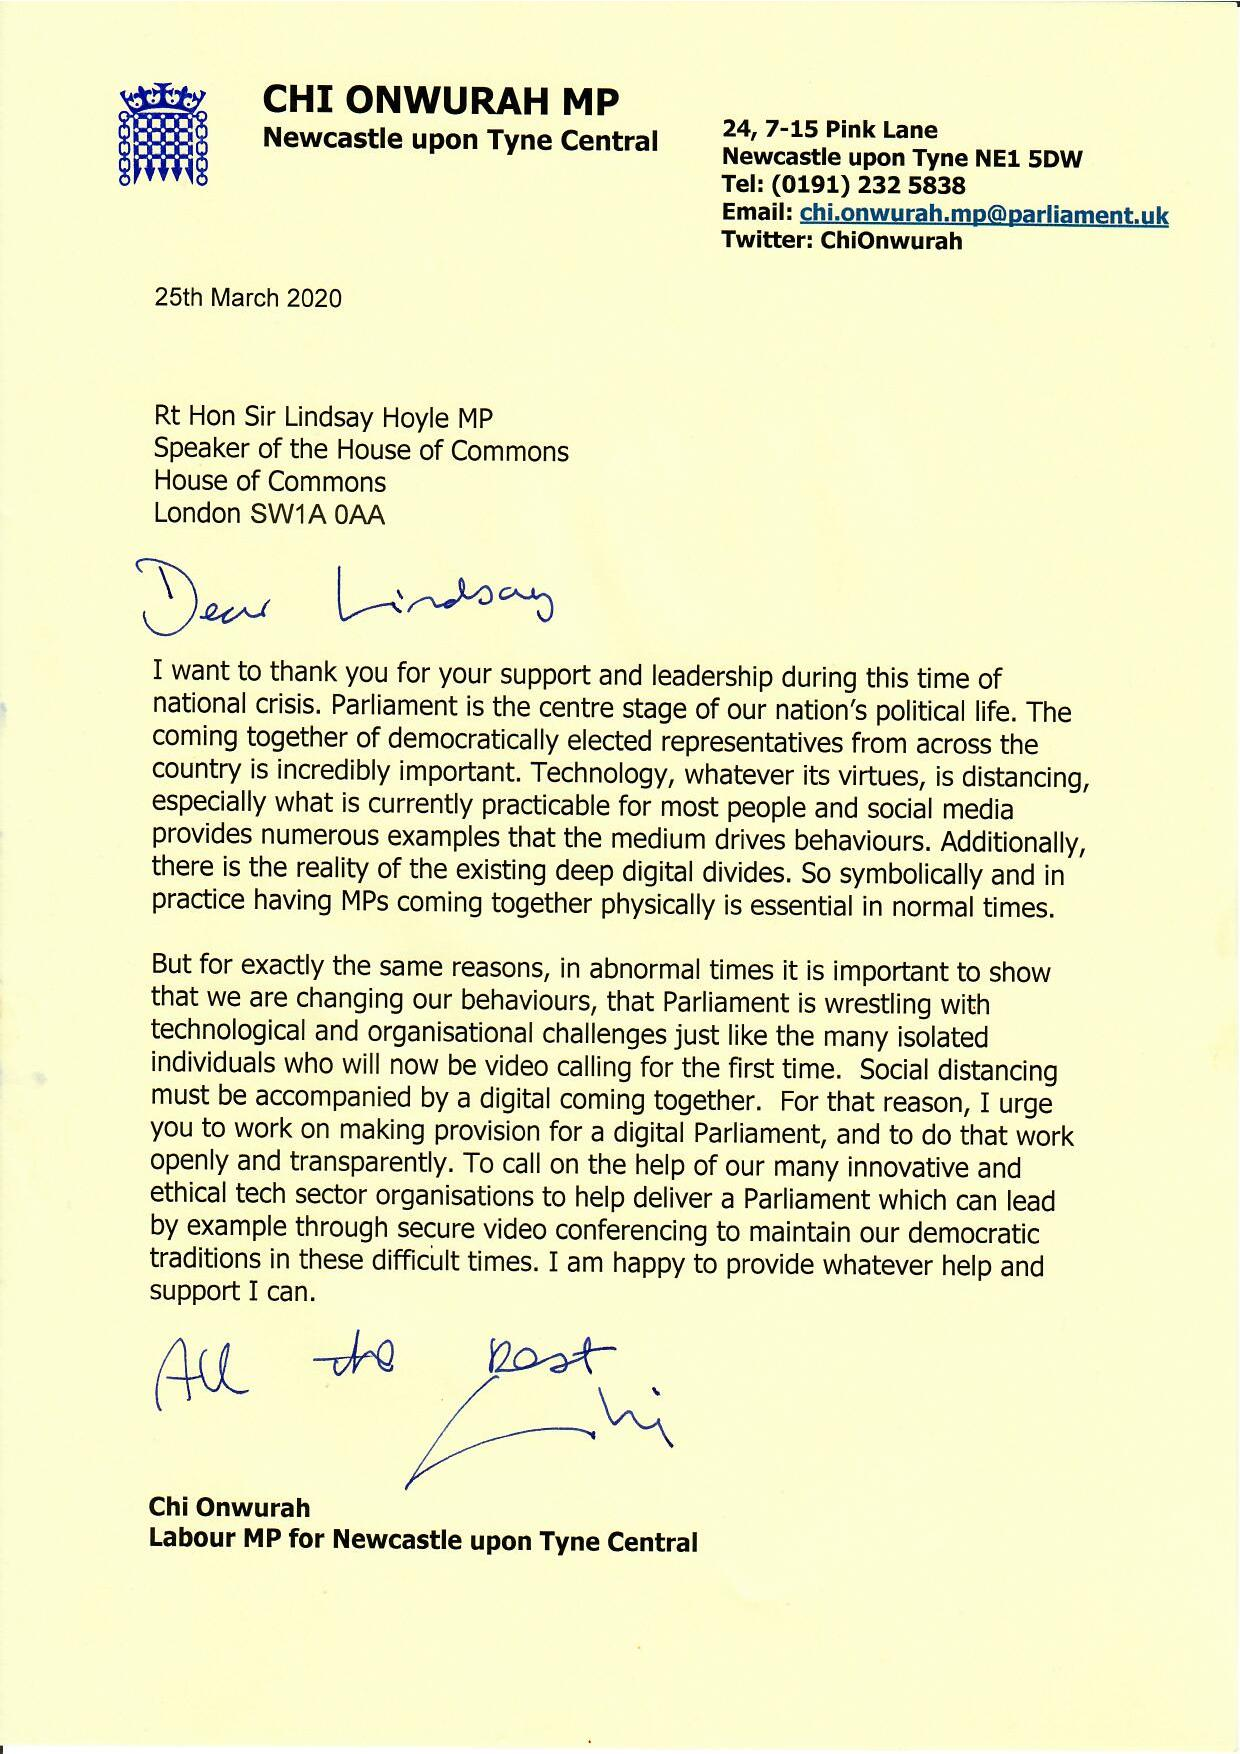 Chi writes to the Speaker requesting a digital Parliament during the covid-19 outbreak